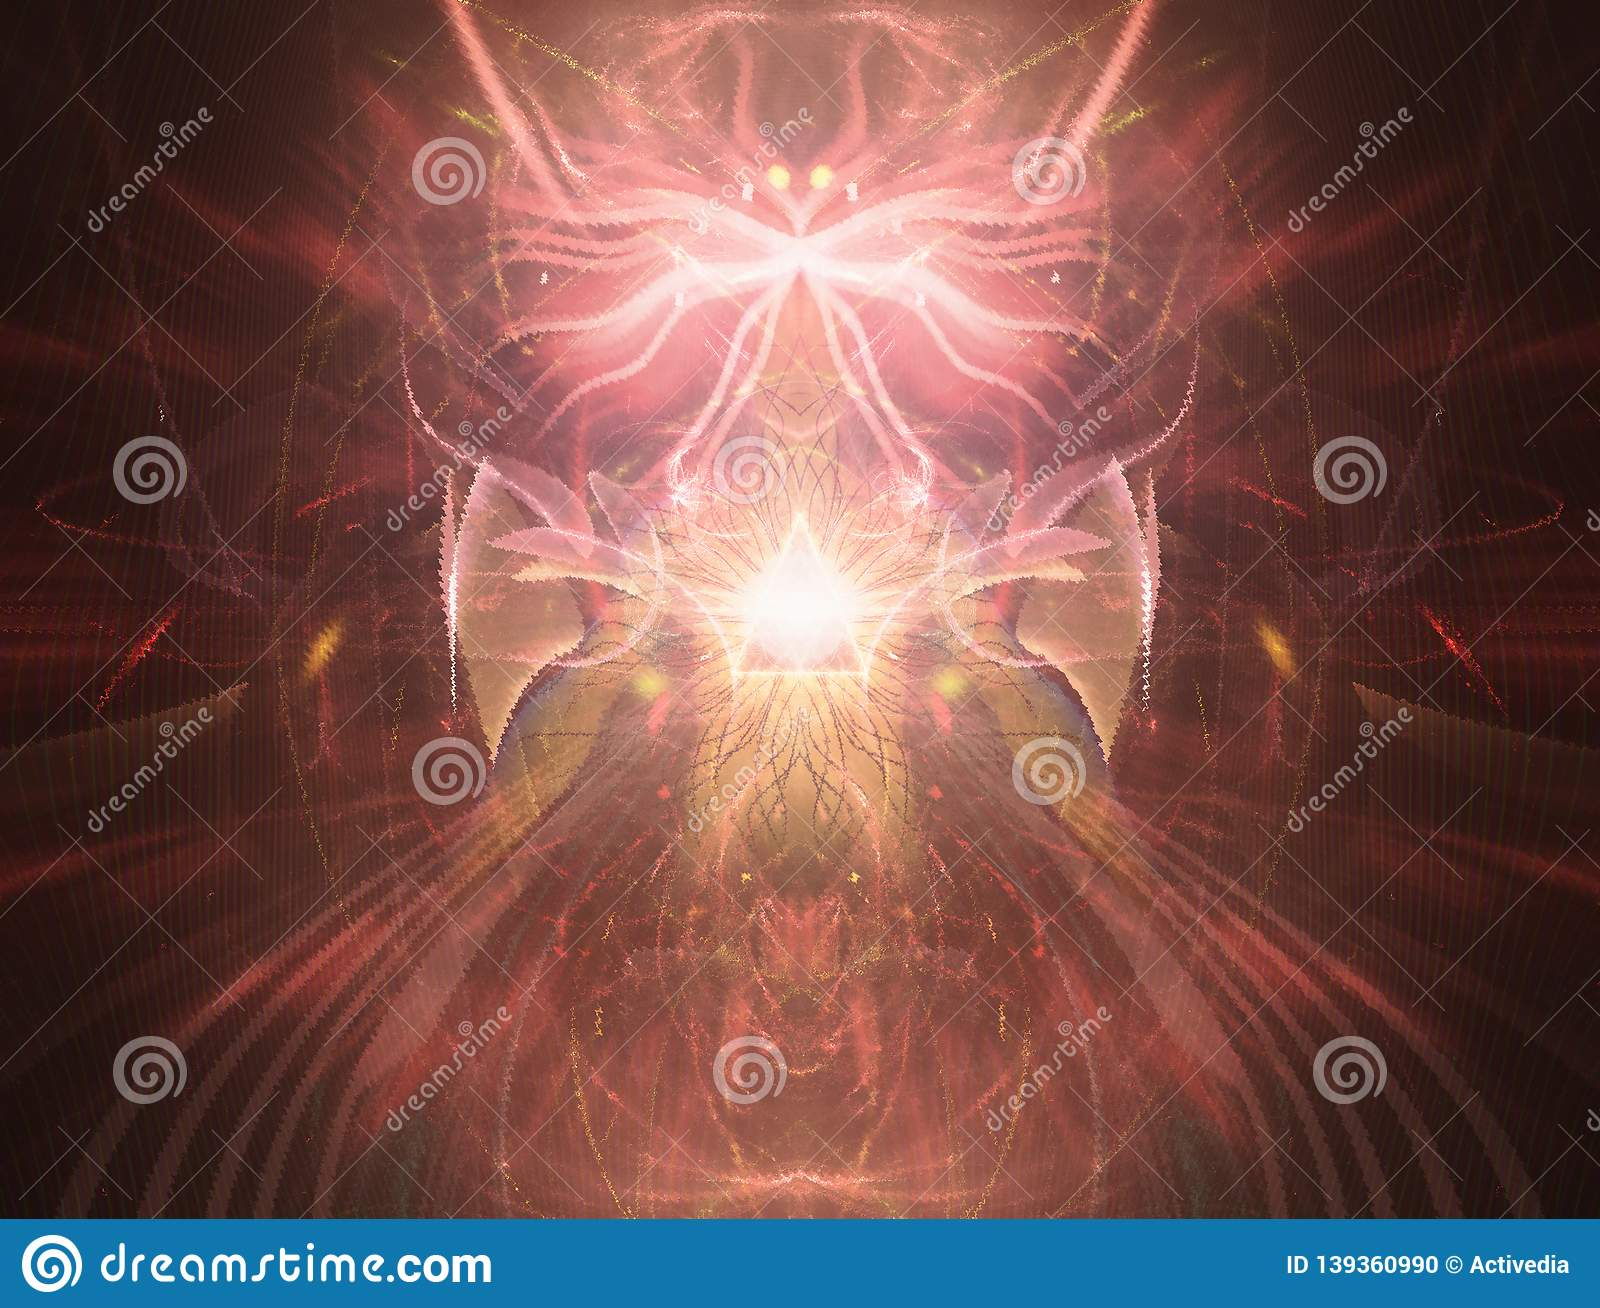 Psychedelic HiTech Fractals Visionary Art Stock Illustration